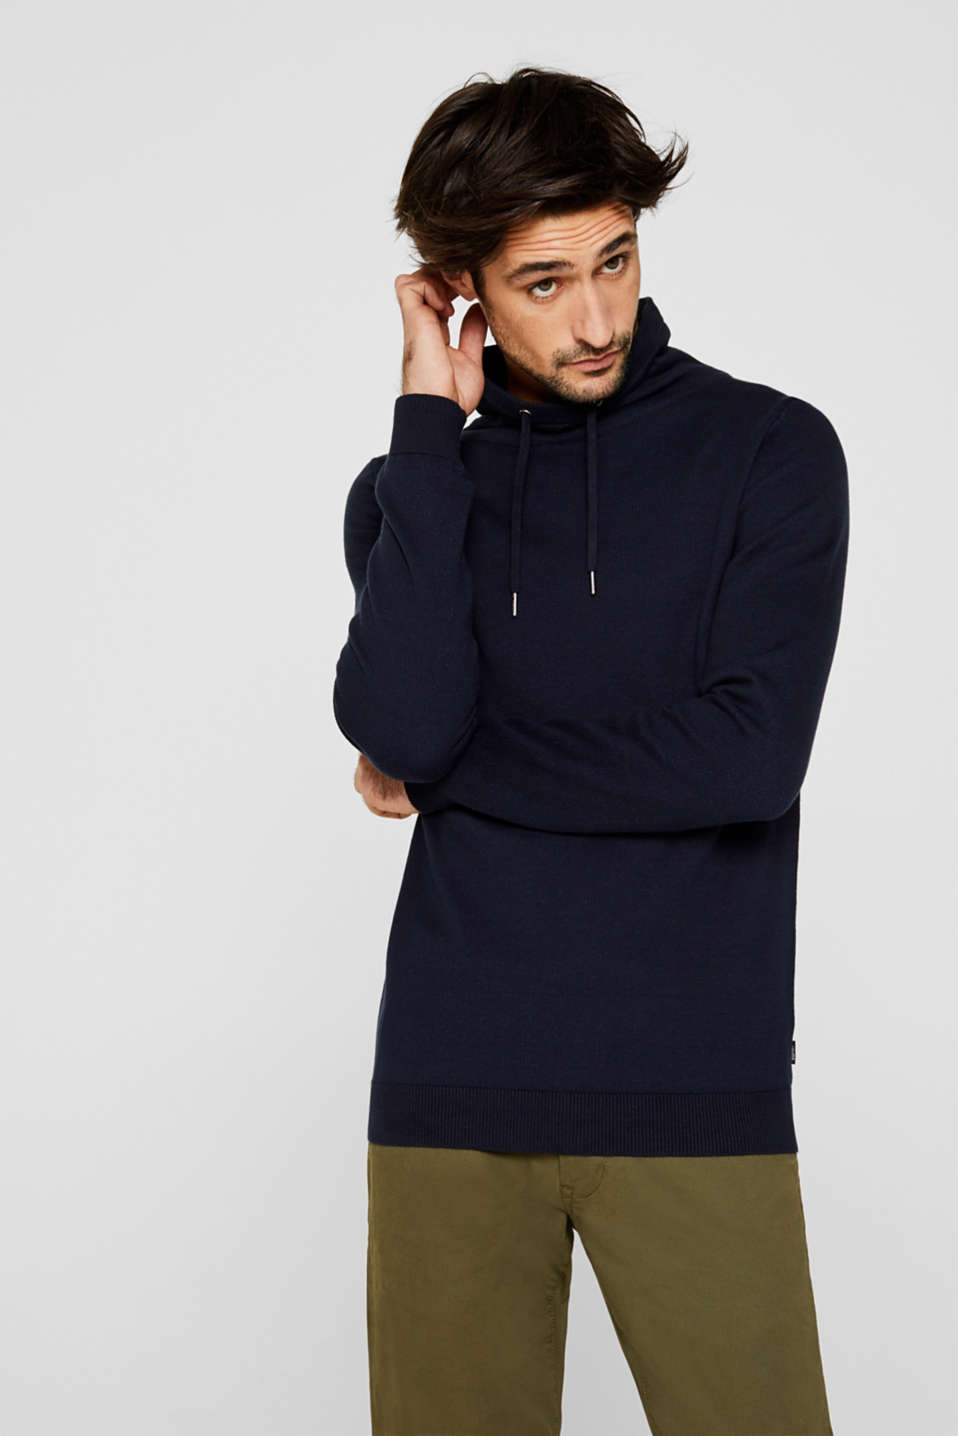 Esprit - Sweatshirt with a drawstring collar, 100% cotton